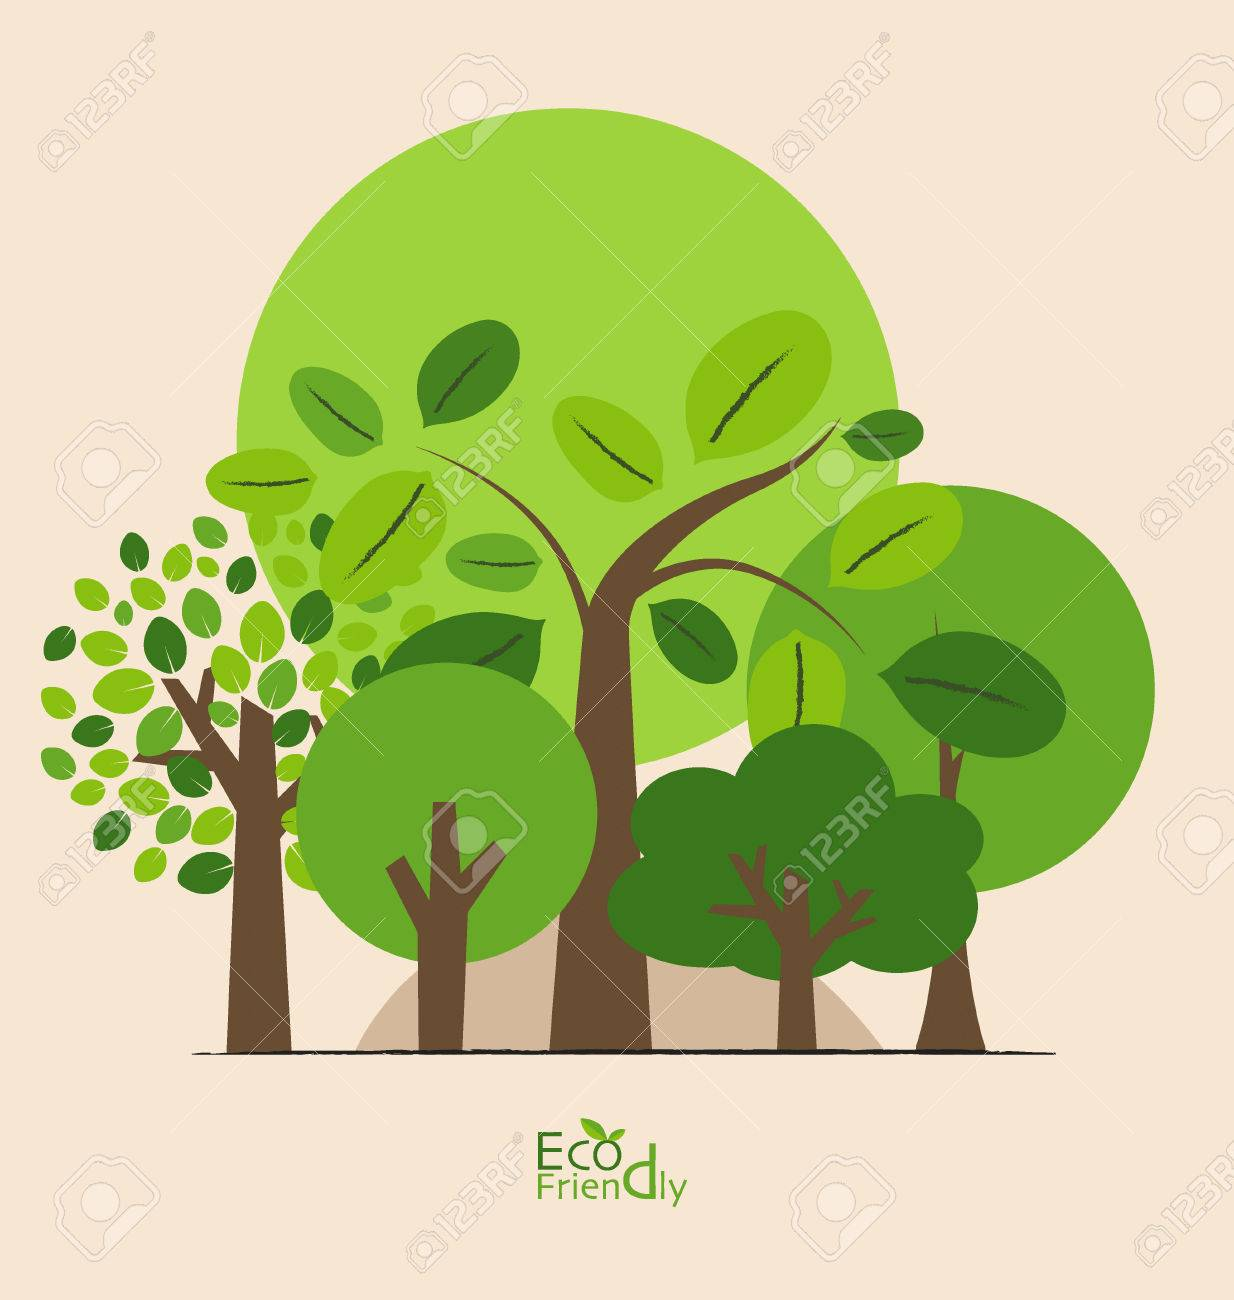 Abstract trees. Vector illustration. - 38122406